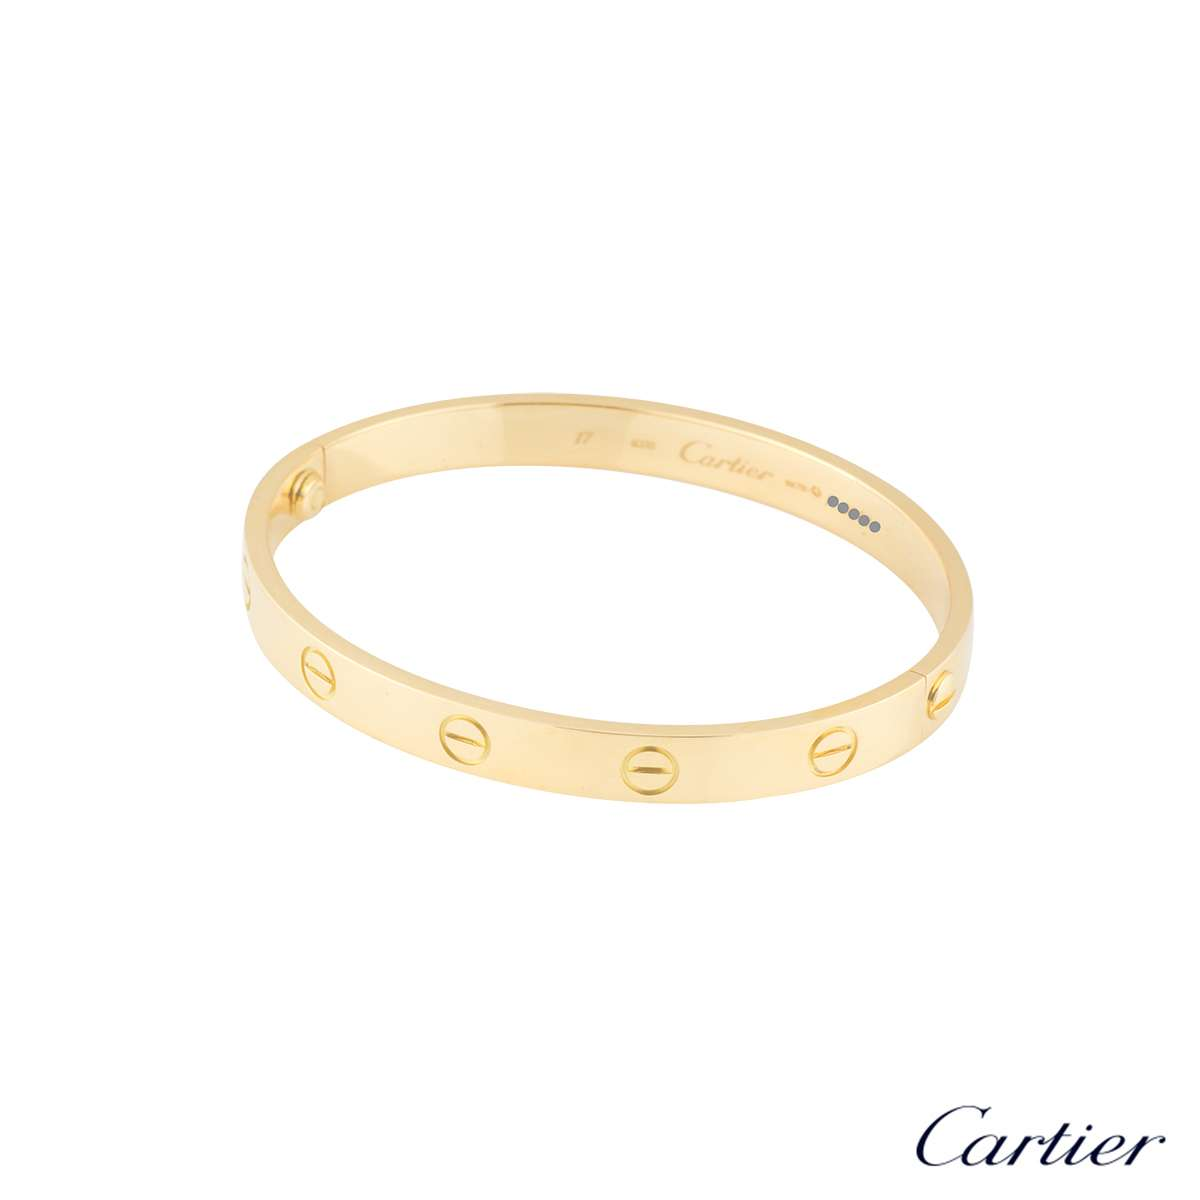 cartier bracelet sizes cartier bracelet size 17 b6035517 rich diamonds of 4798